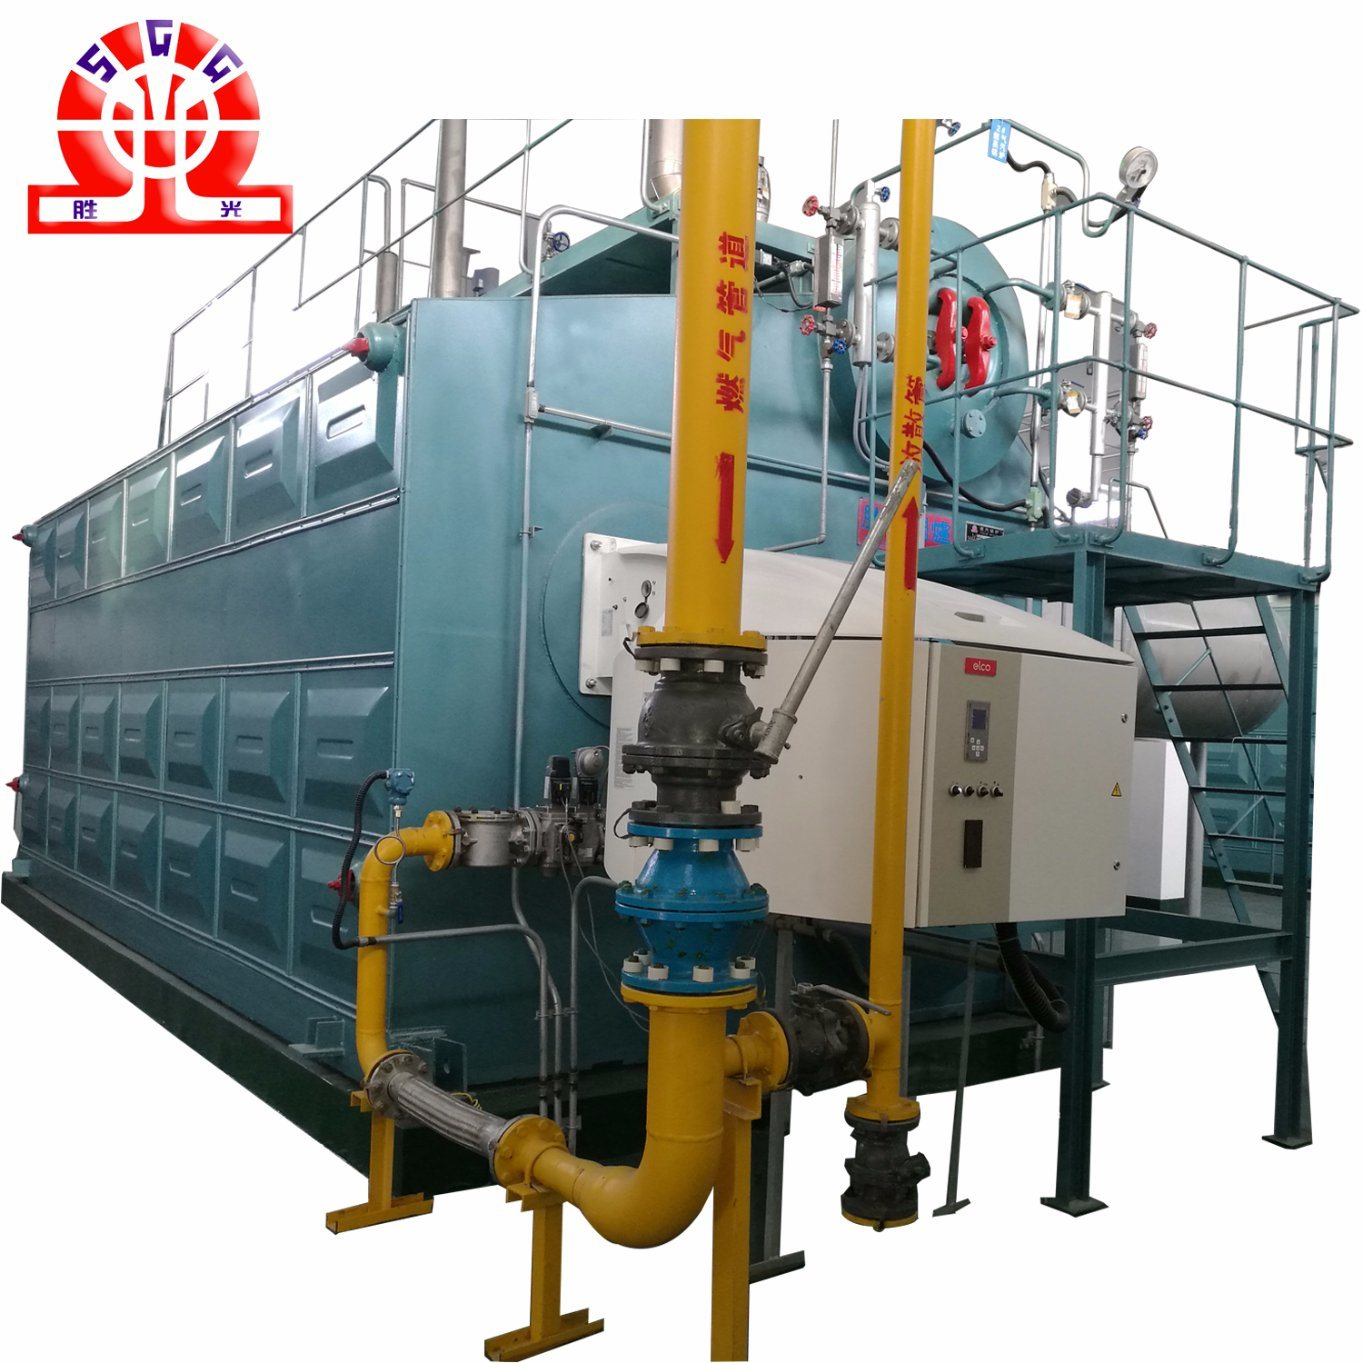 China 58MW Best Seller Oil Fired Hot Water Boiler - China Automatic ...